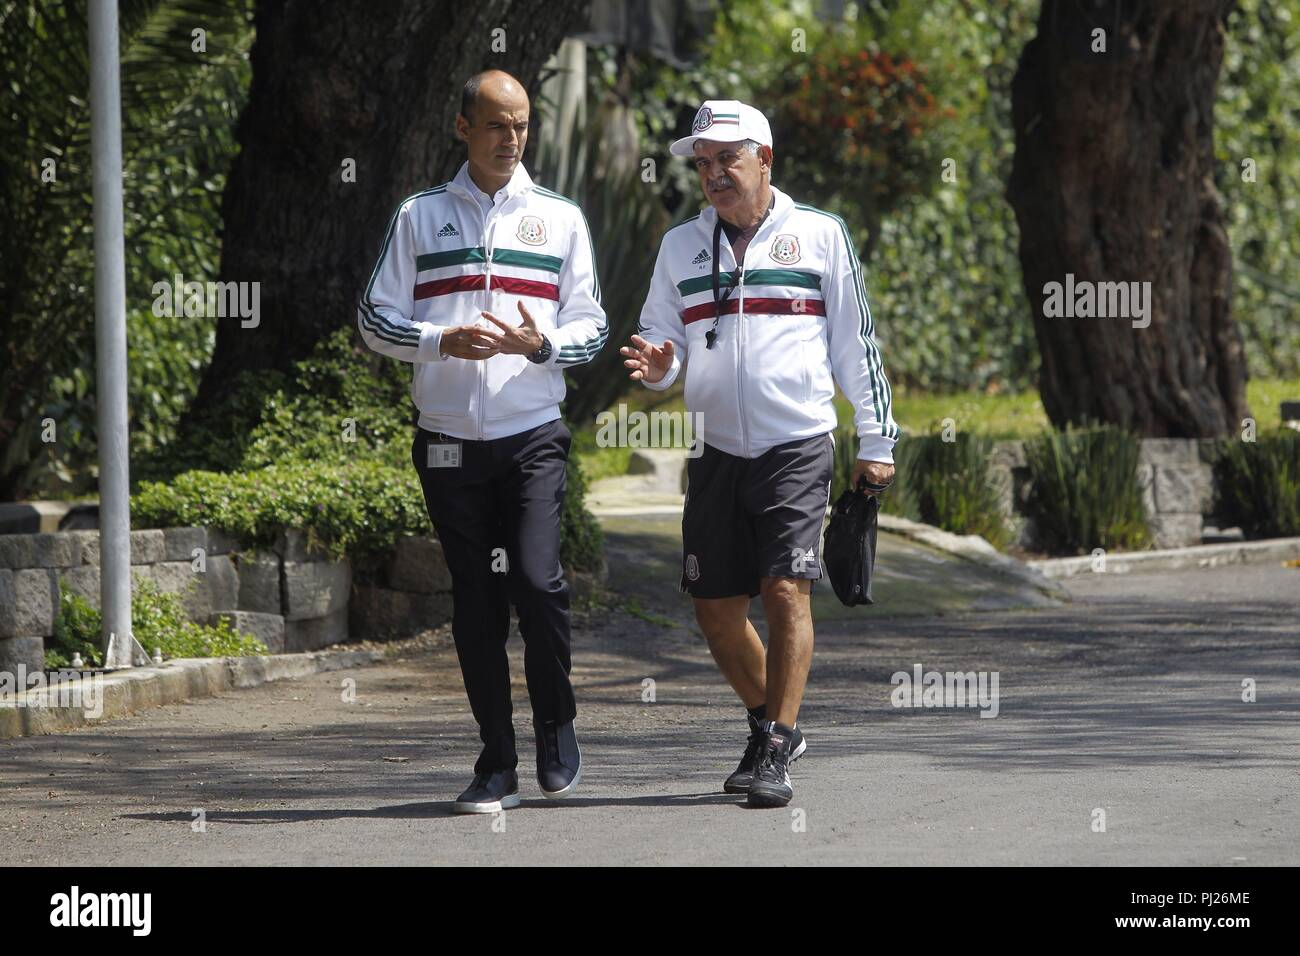 Guillermo Cantu (L), sports director of the Mexican Football Federation, walks with Brazilian coach Ricardo 'El Tuca' Ferretti (R) to a press conference in Mexico City, Mexico, 03 September 2018. Ferretti was presented as an interim coach of the Mexican soccer team for the friendly matches against Uruguay and the United States, corresponding to the FIFA date on September 7 and 11. EFE/Sashenka Gutierrez - Stock Image